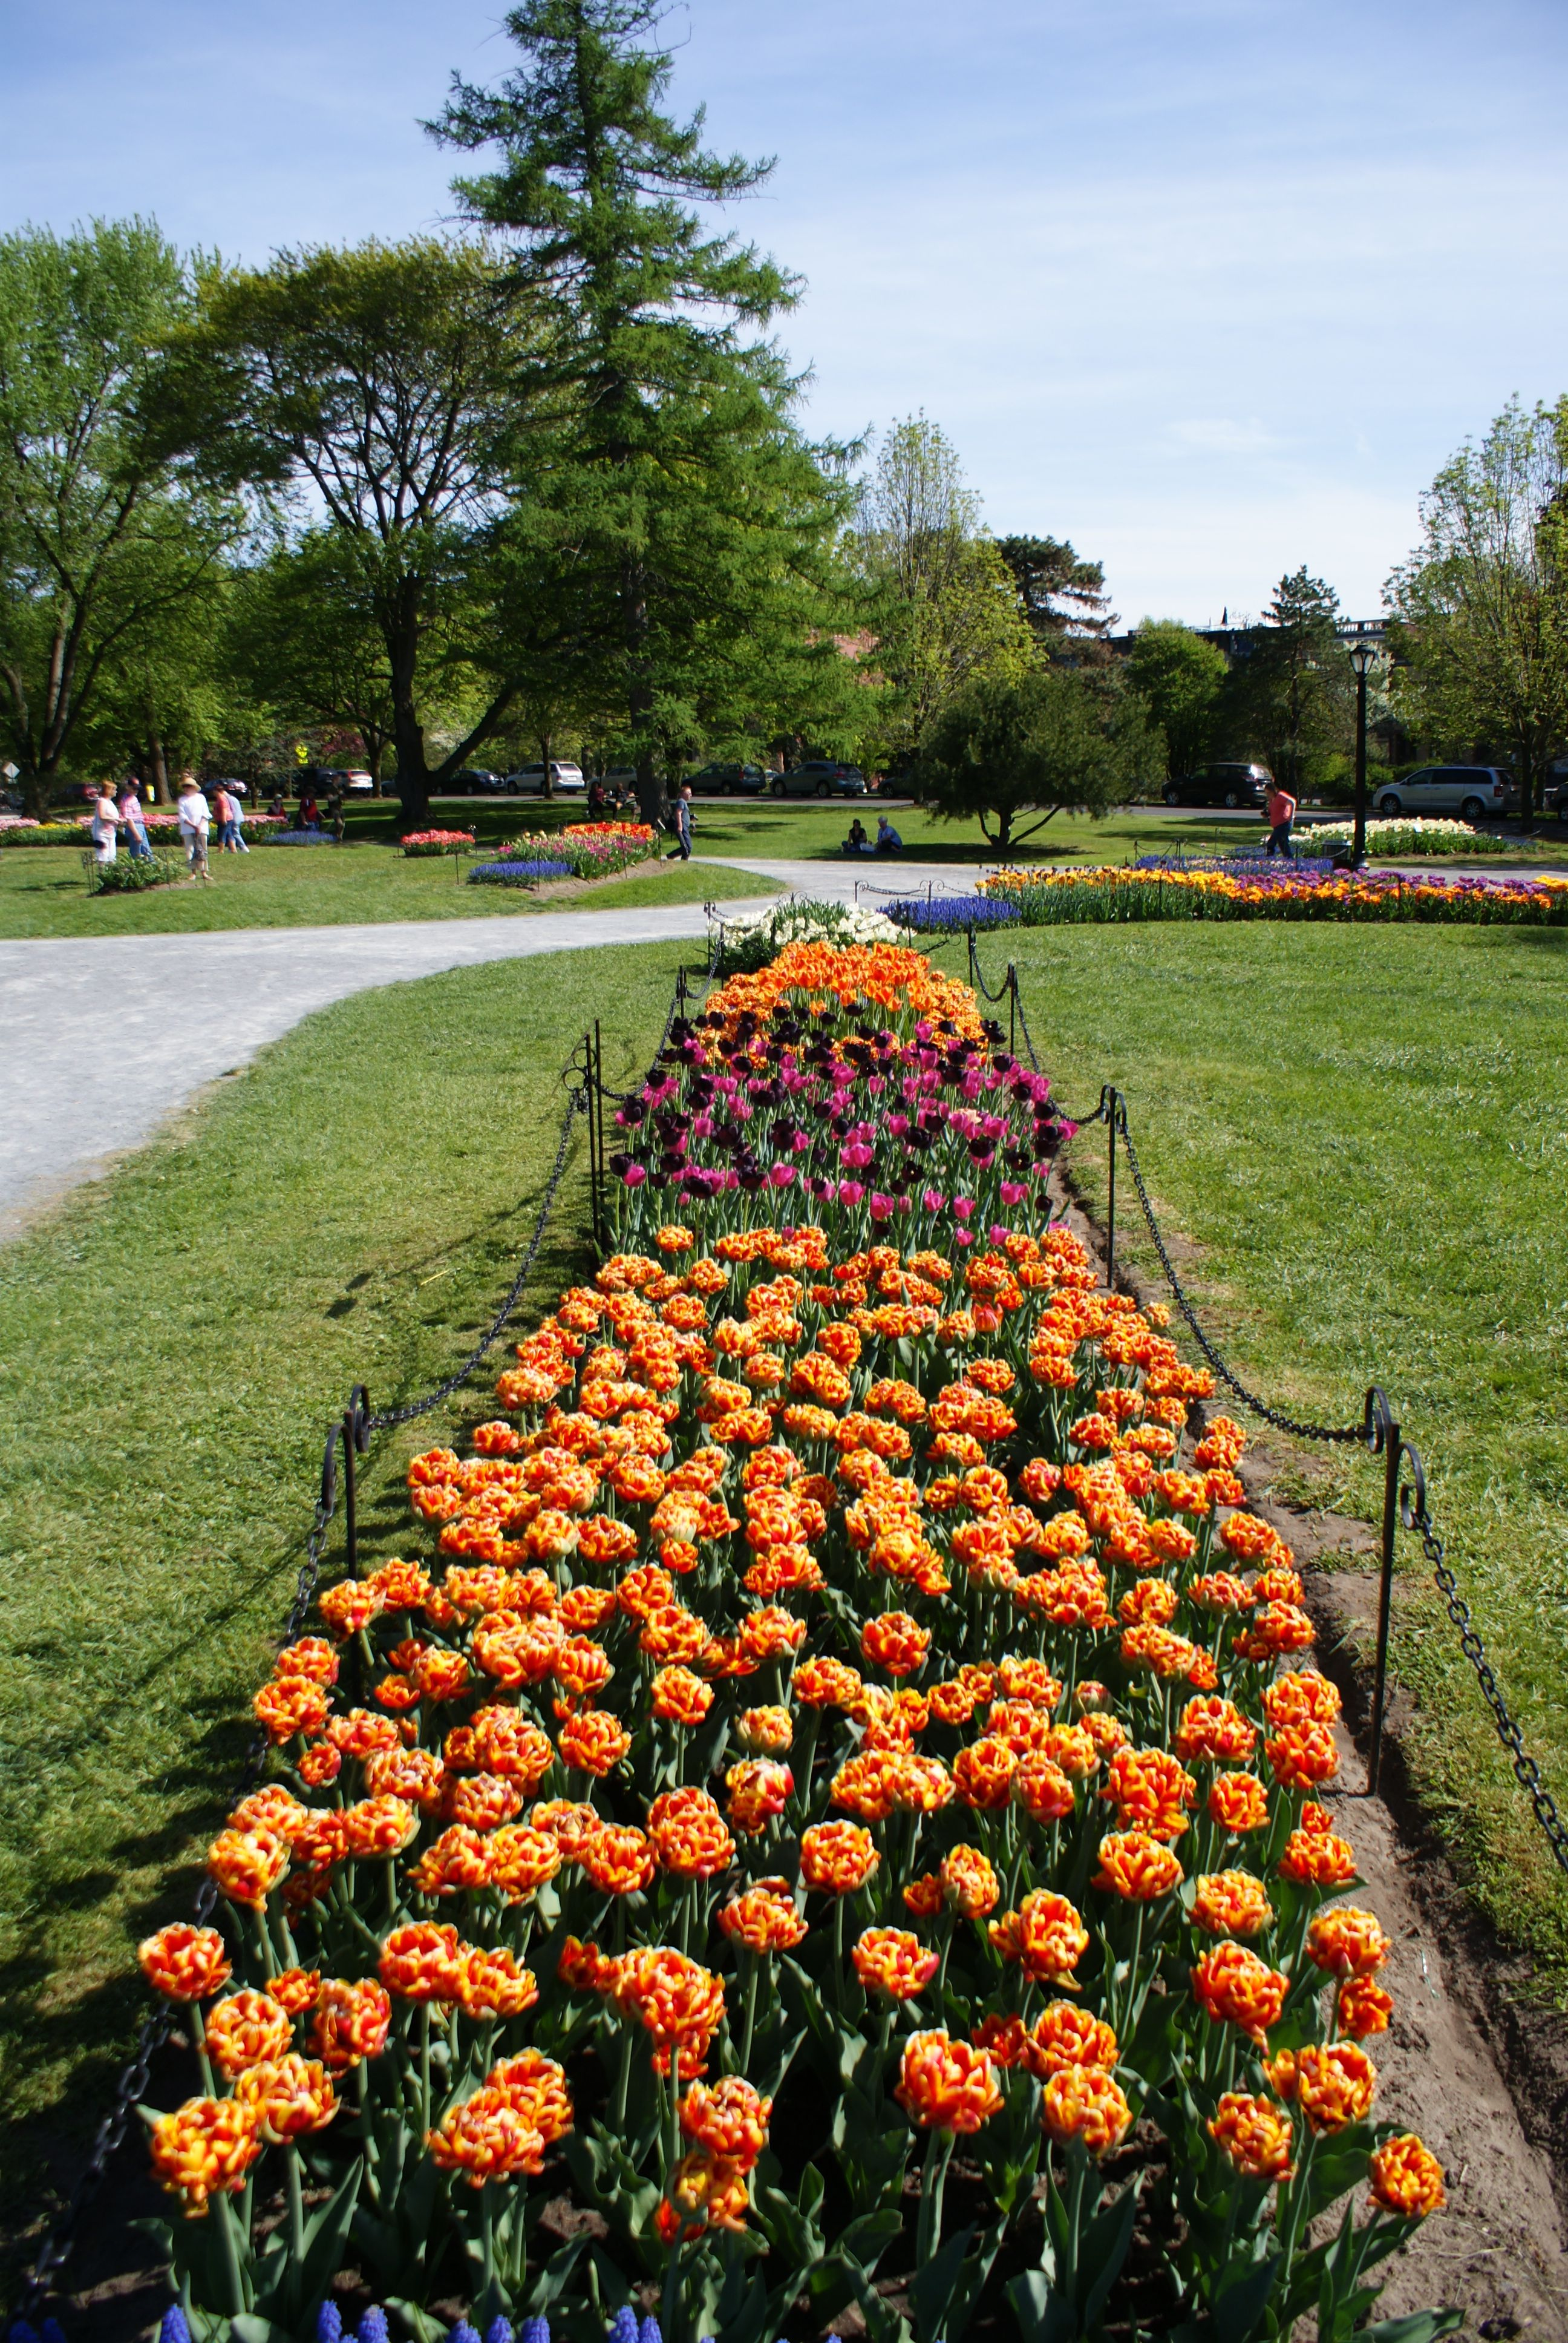 Visit Albany In Upstate New York This Spring For A Getaway